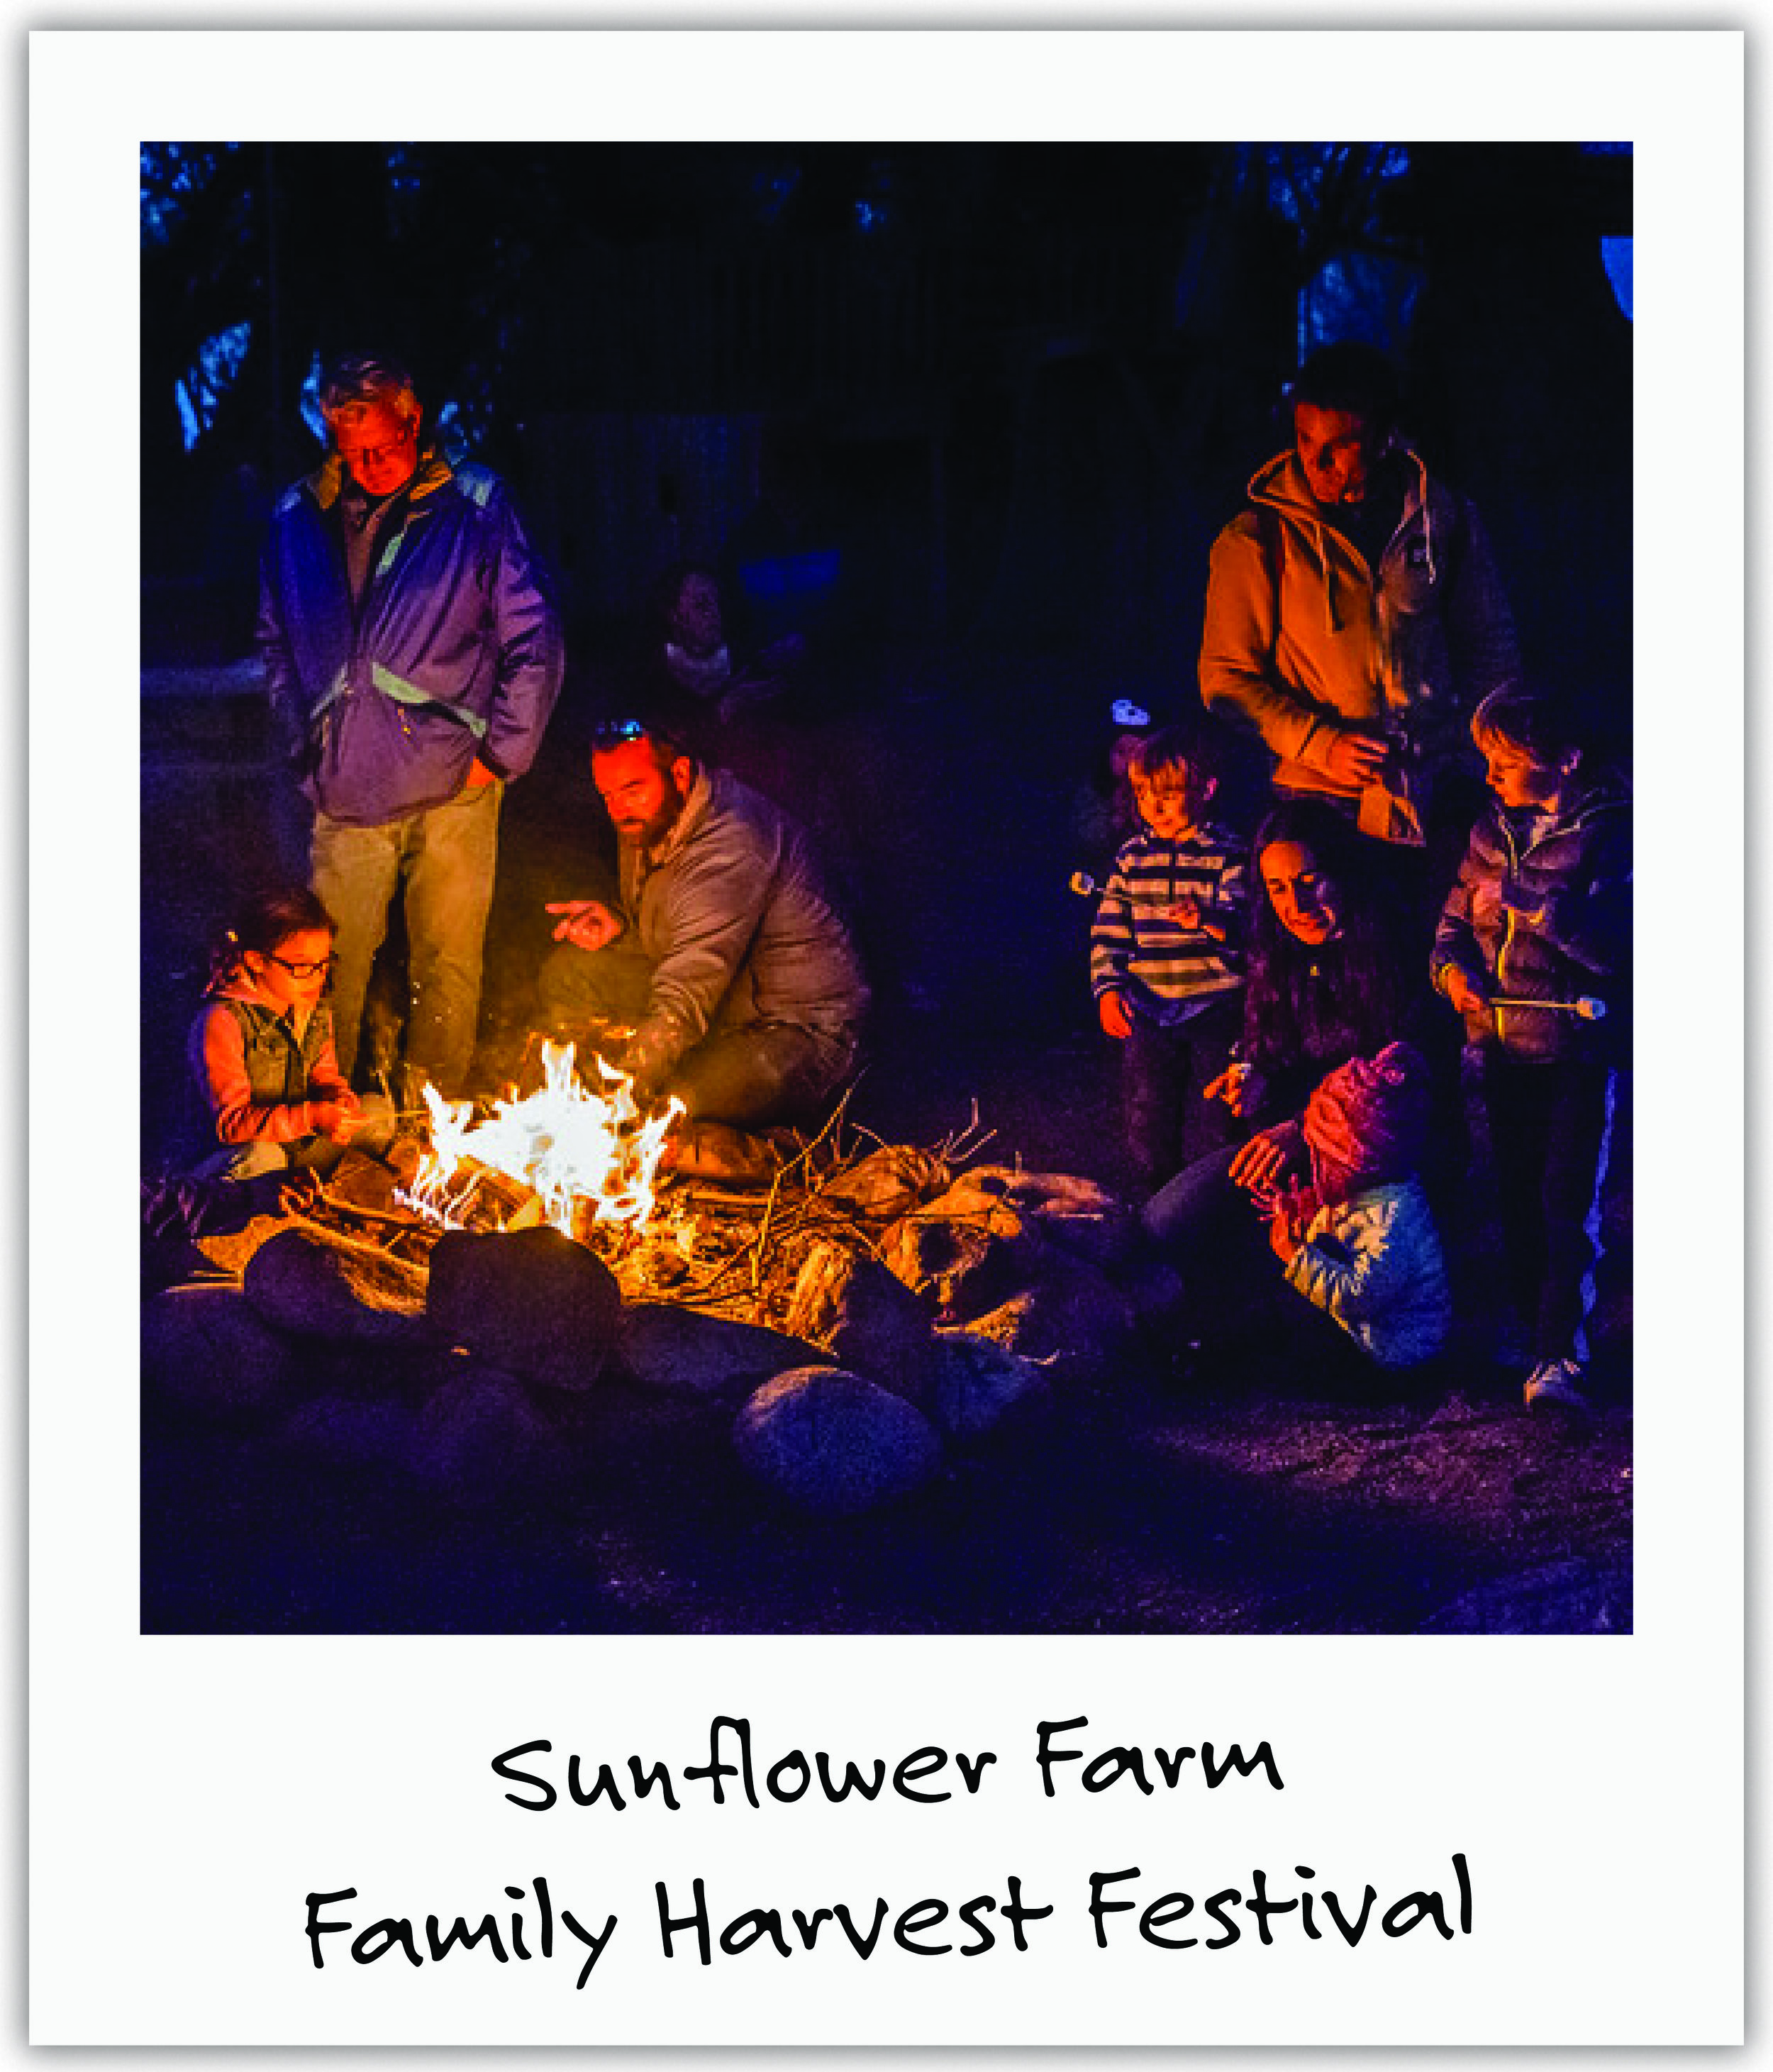 Sunflower Farm, where Mila spent much of her childhood, graciously offered a Family Harvest Festival around the campfire, together with holiday photo sessions by new friend and photographer Natasha.